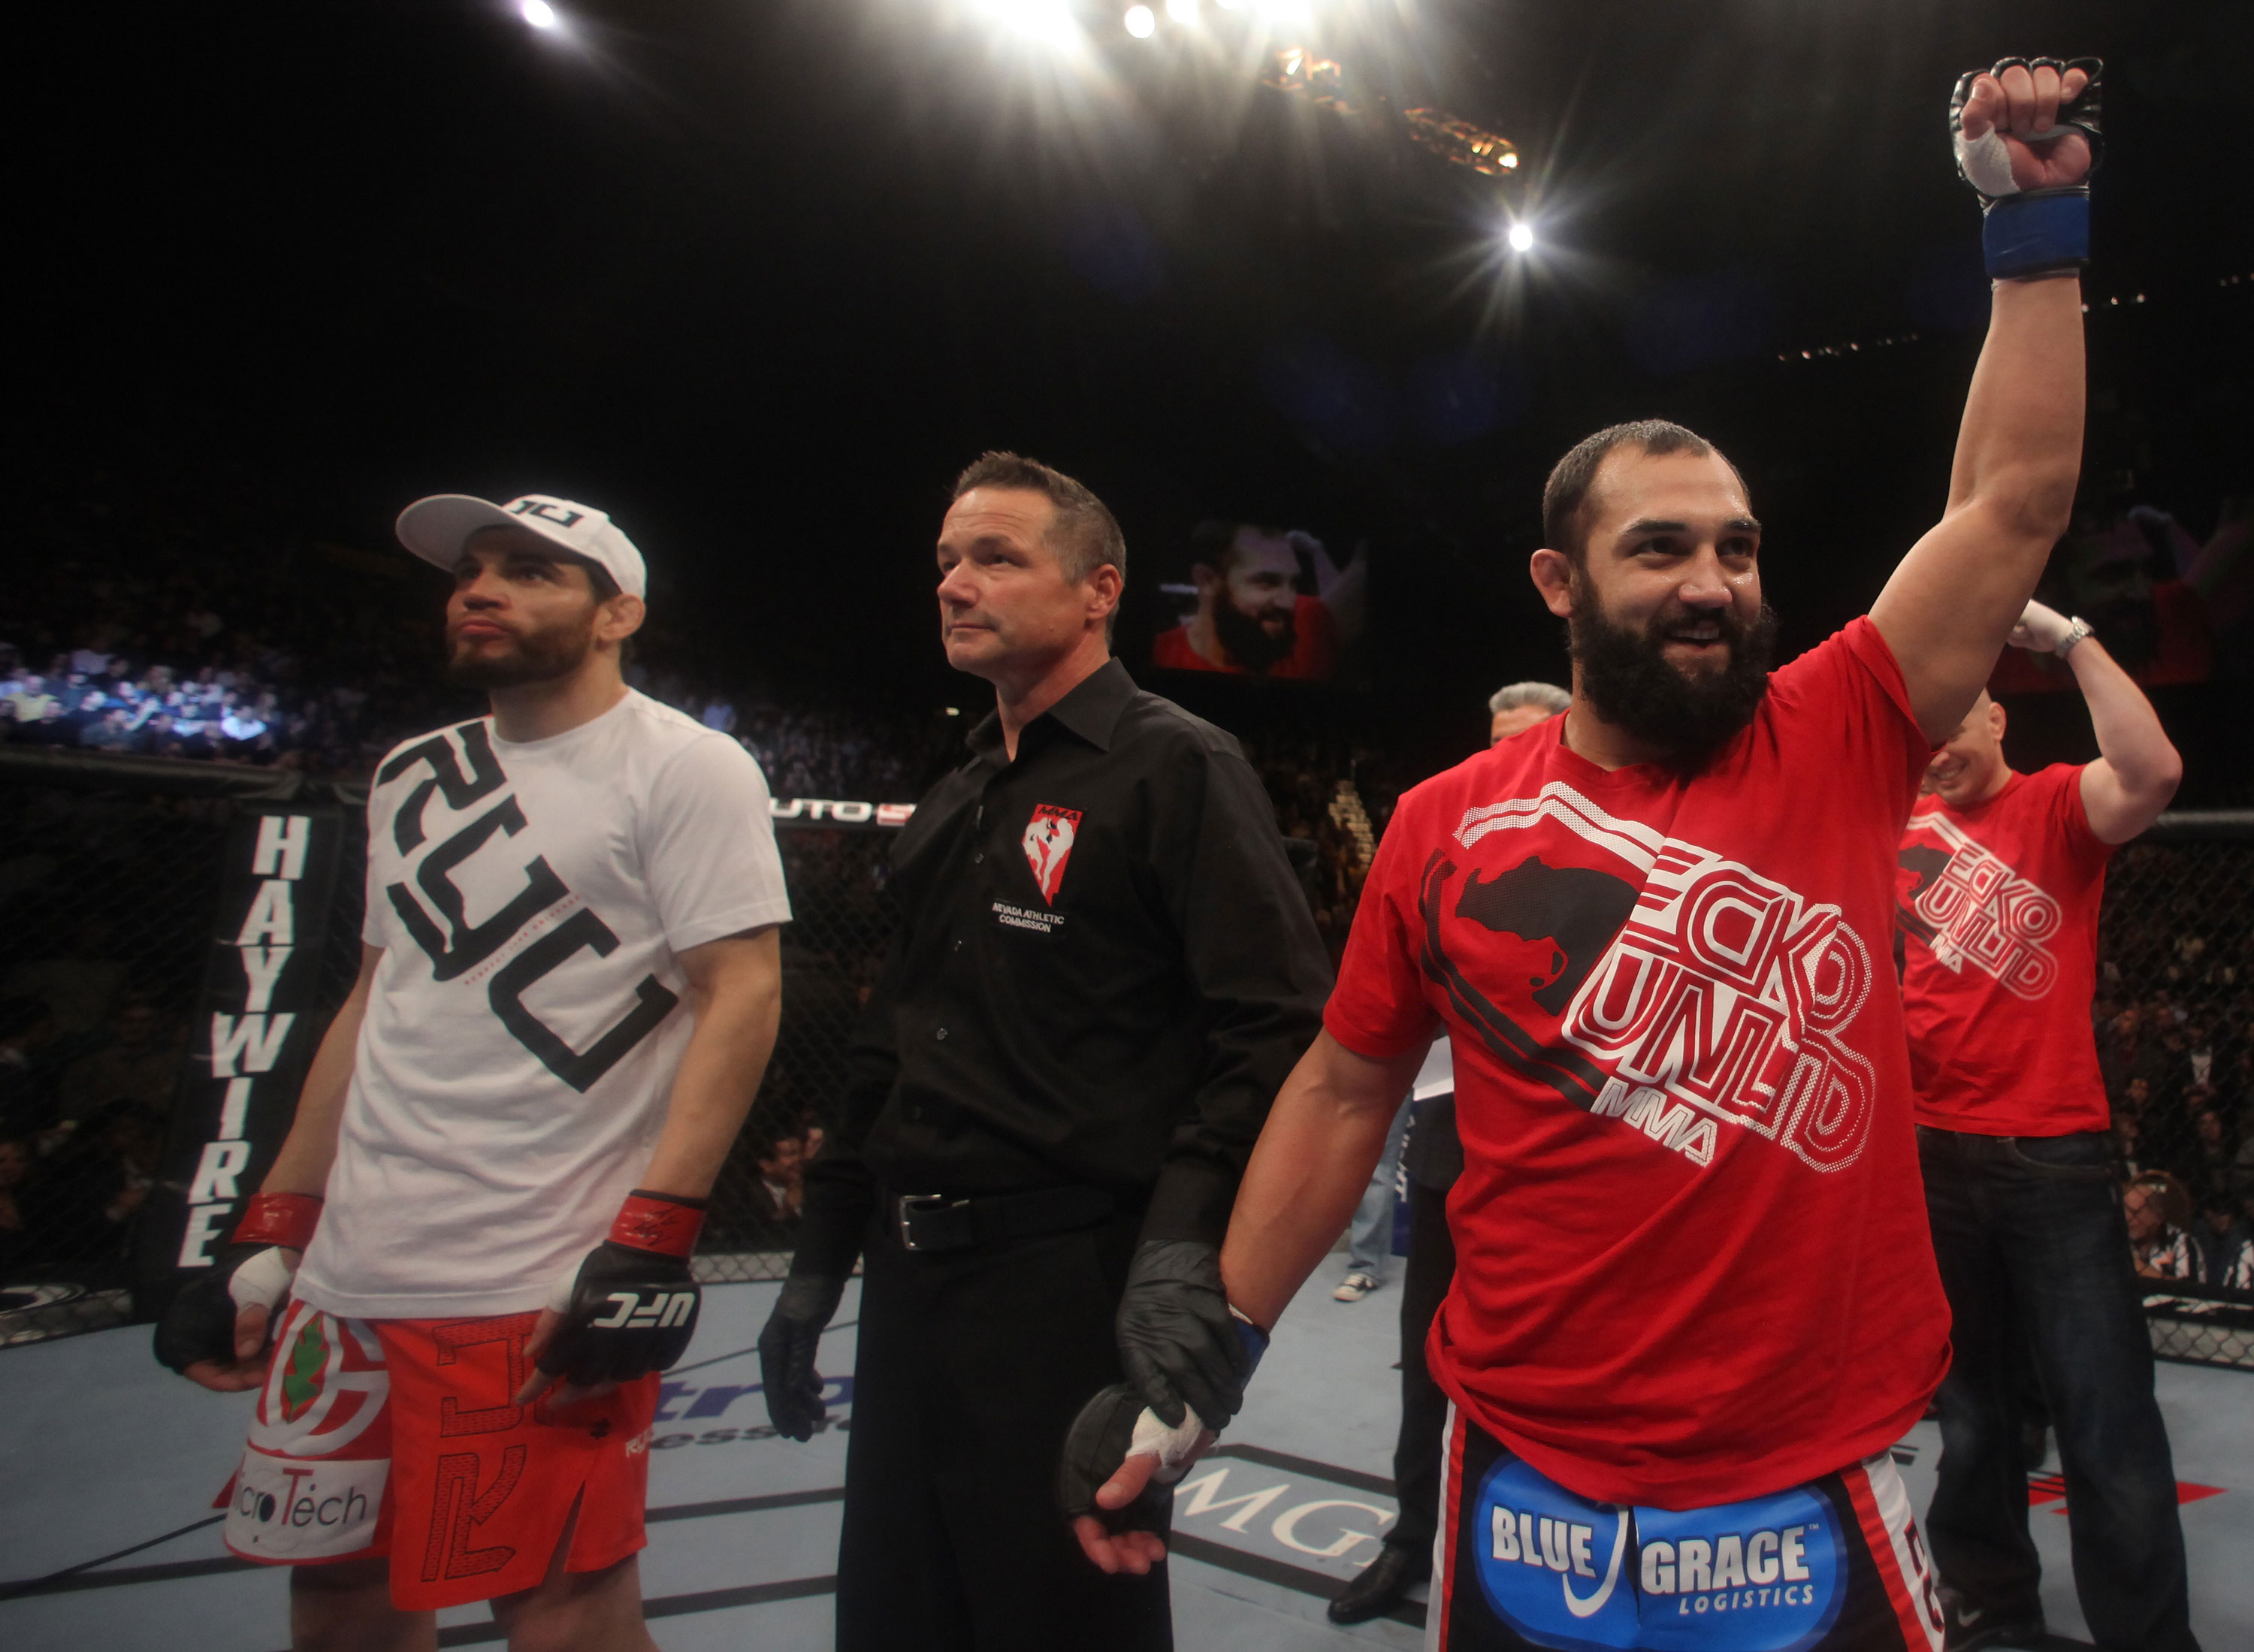 LAS VEGAS, NV - DECEMBER 30:  Johny Hendricks (right) and Jon Fitch (left) await the official decision of their fight during the UFC 141 event at the MGM Grand Garden Arena on December 30, 2011 in Las Vegas, Nevada.  (Photo by Donald Miralle/Zuffa LLC/Zuffa LLC via Getty Images) *** Local Caption *** Johny Hendricks; Jon Fitch